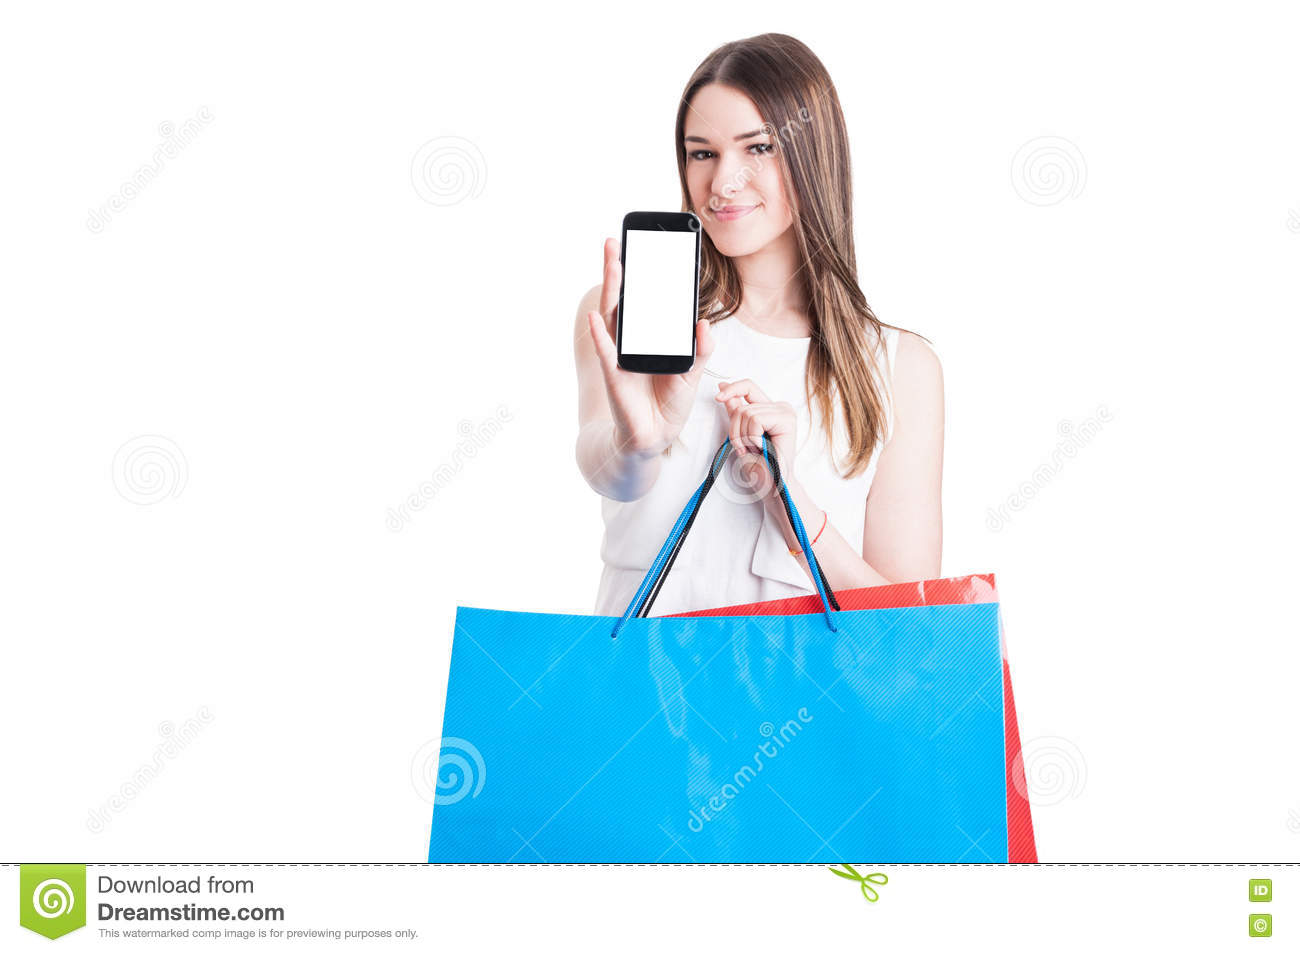 Discussion on this topic: Be a Smart Phone Shopper, be-a-smart-phone-shopper/